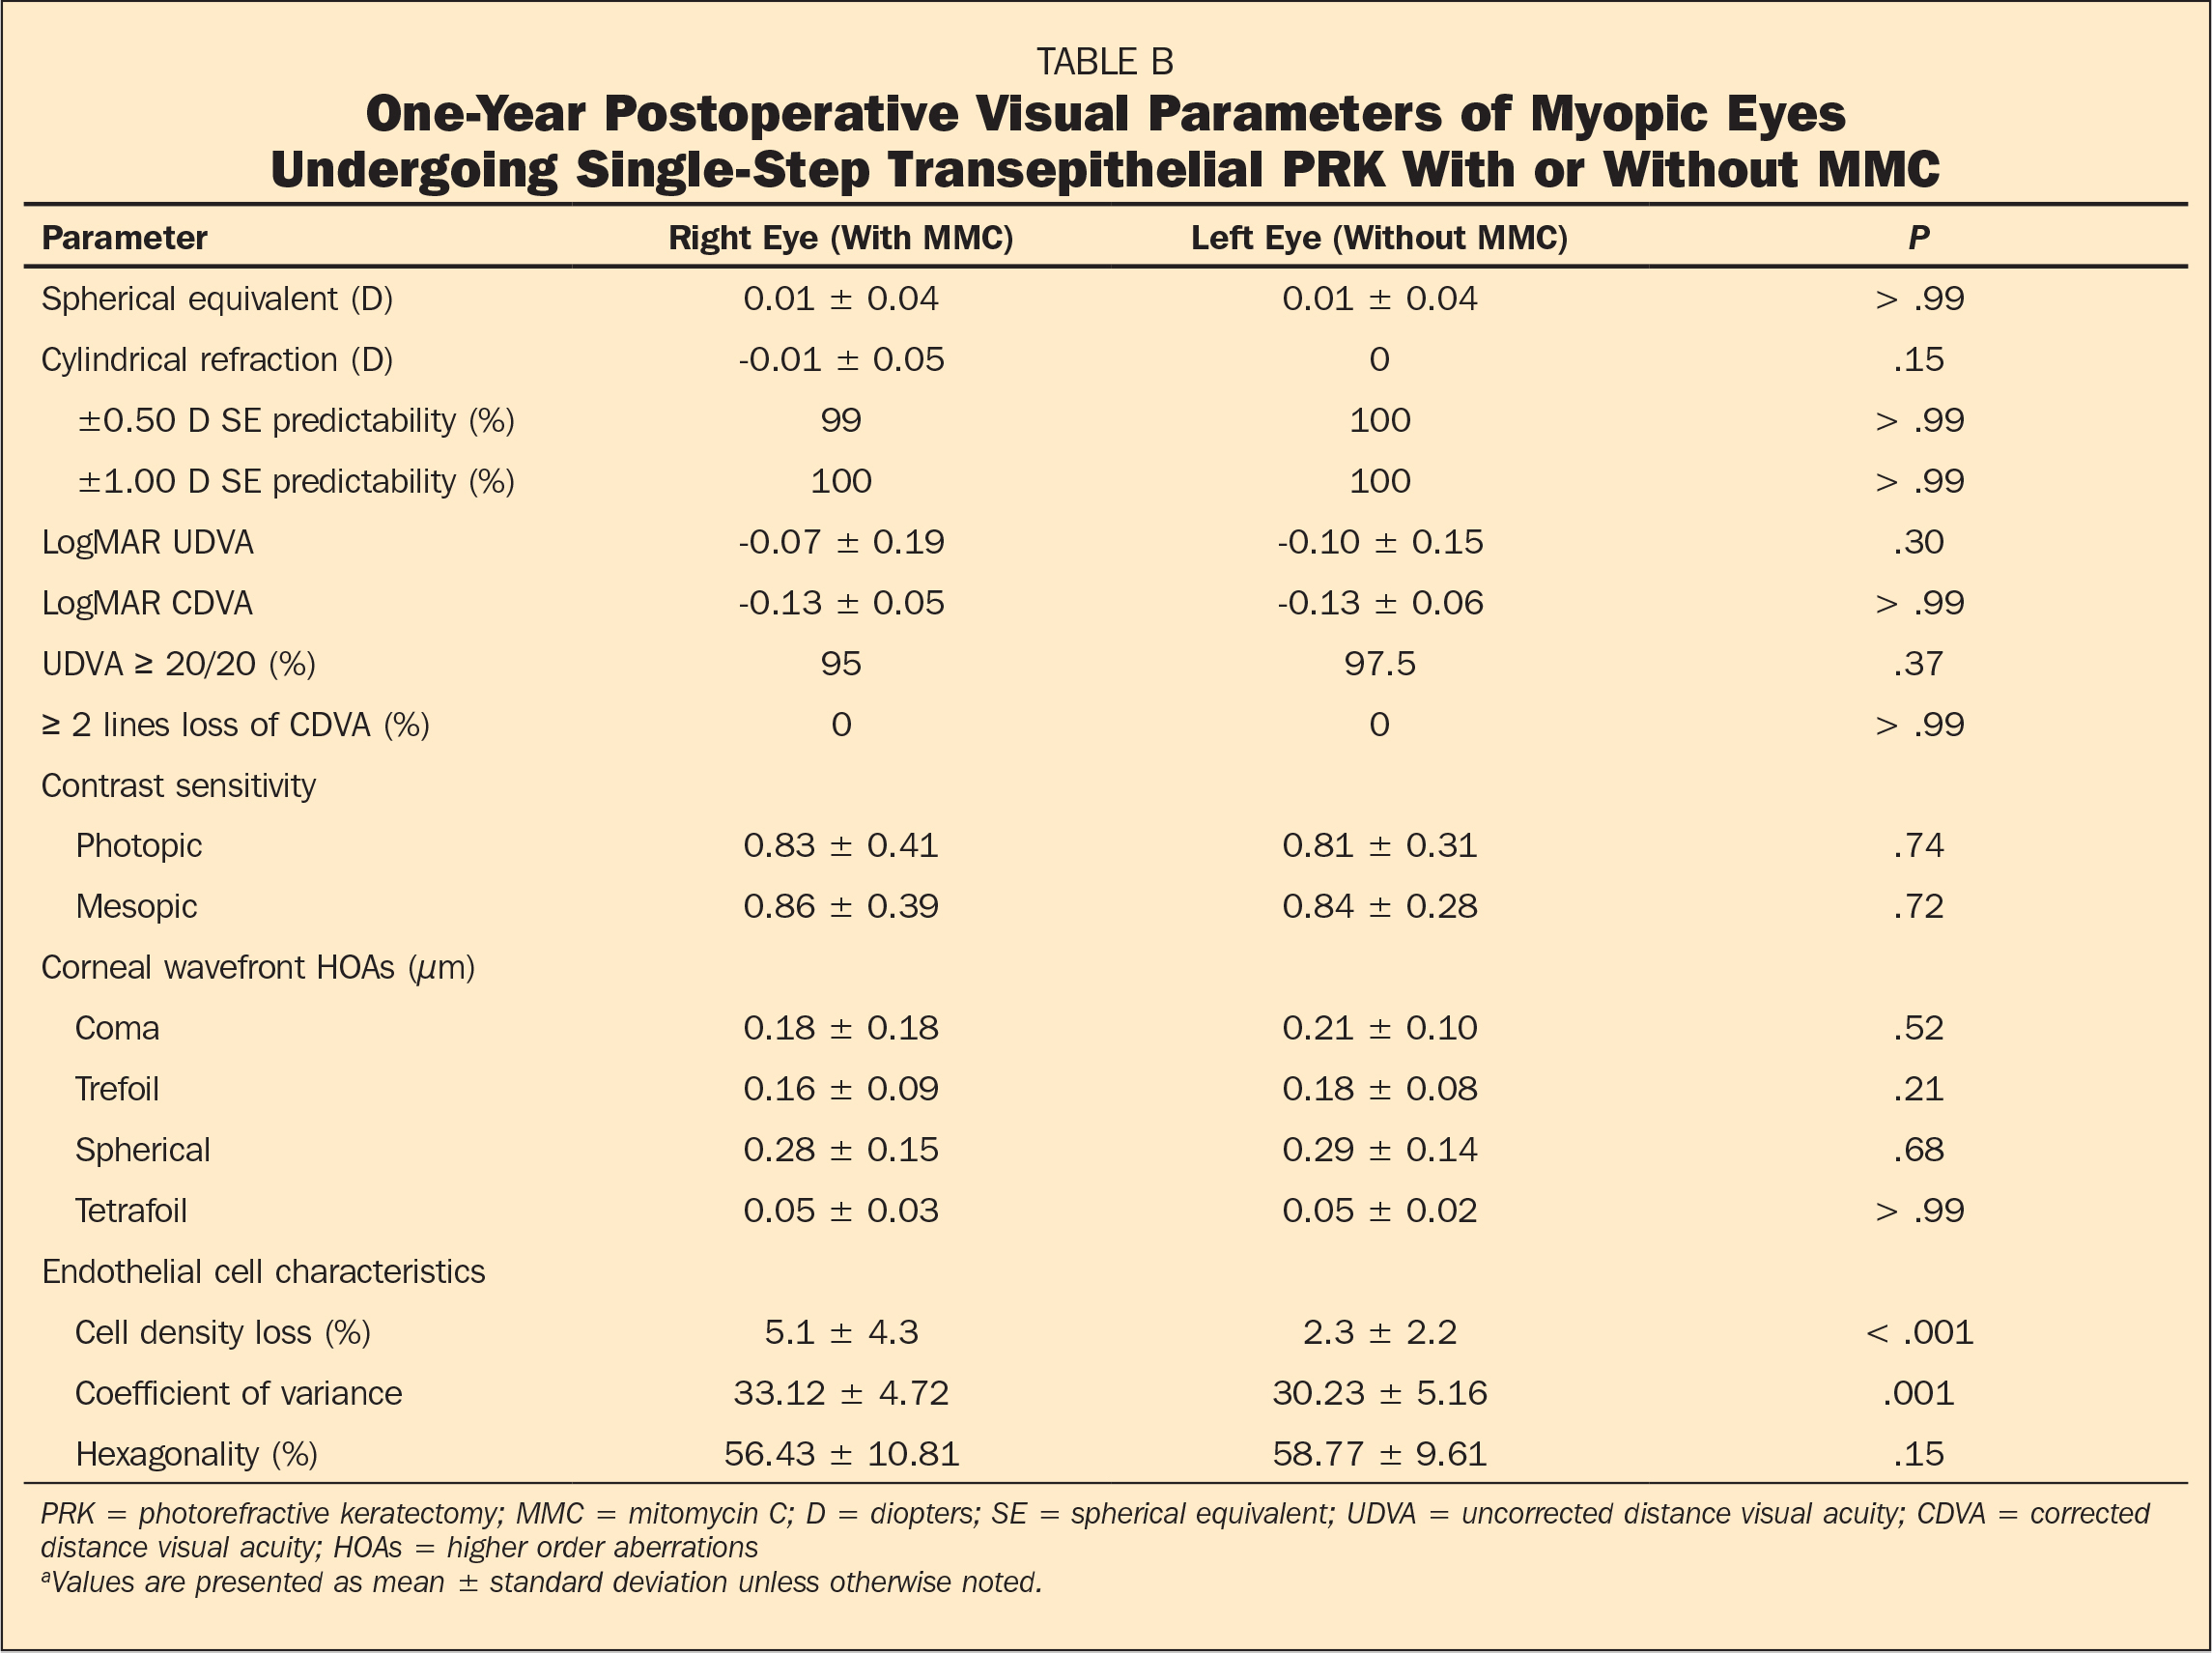 One-Year Postoperative Visual Parameters of Myopic Eyes Undergoing Single-Step Transepithelial PRK With or Without MMC